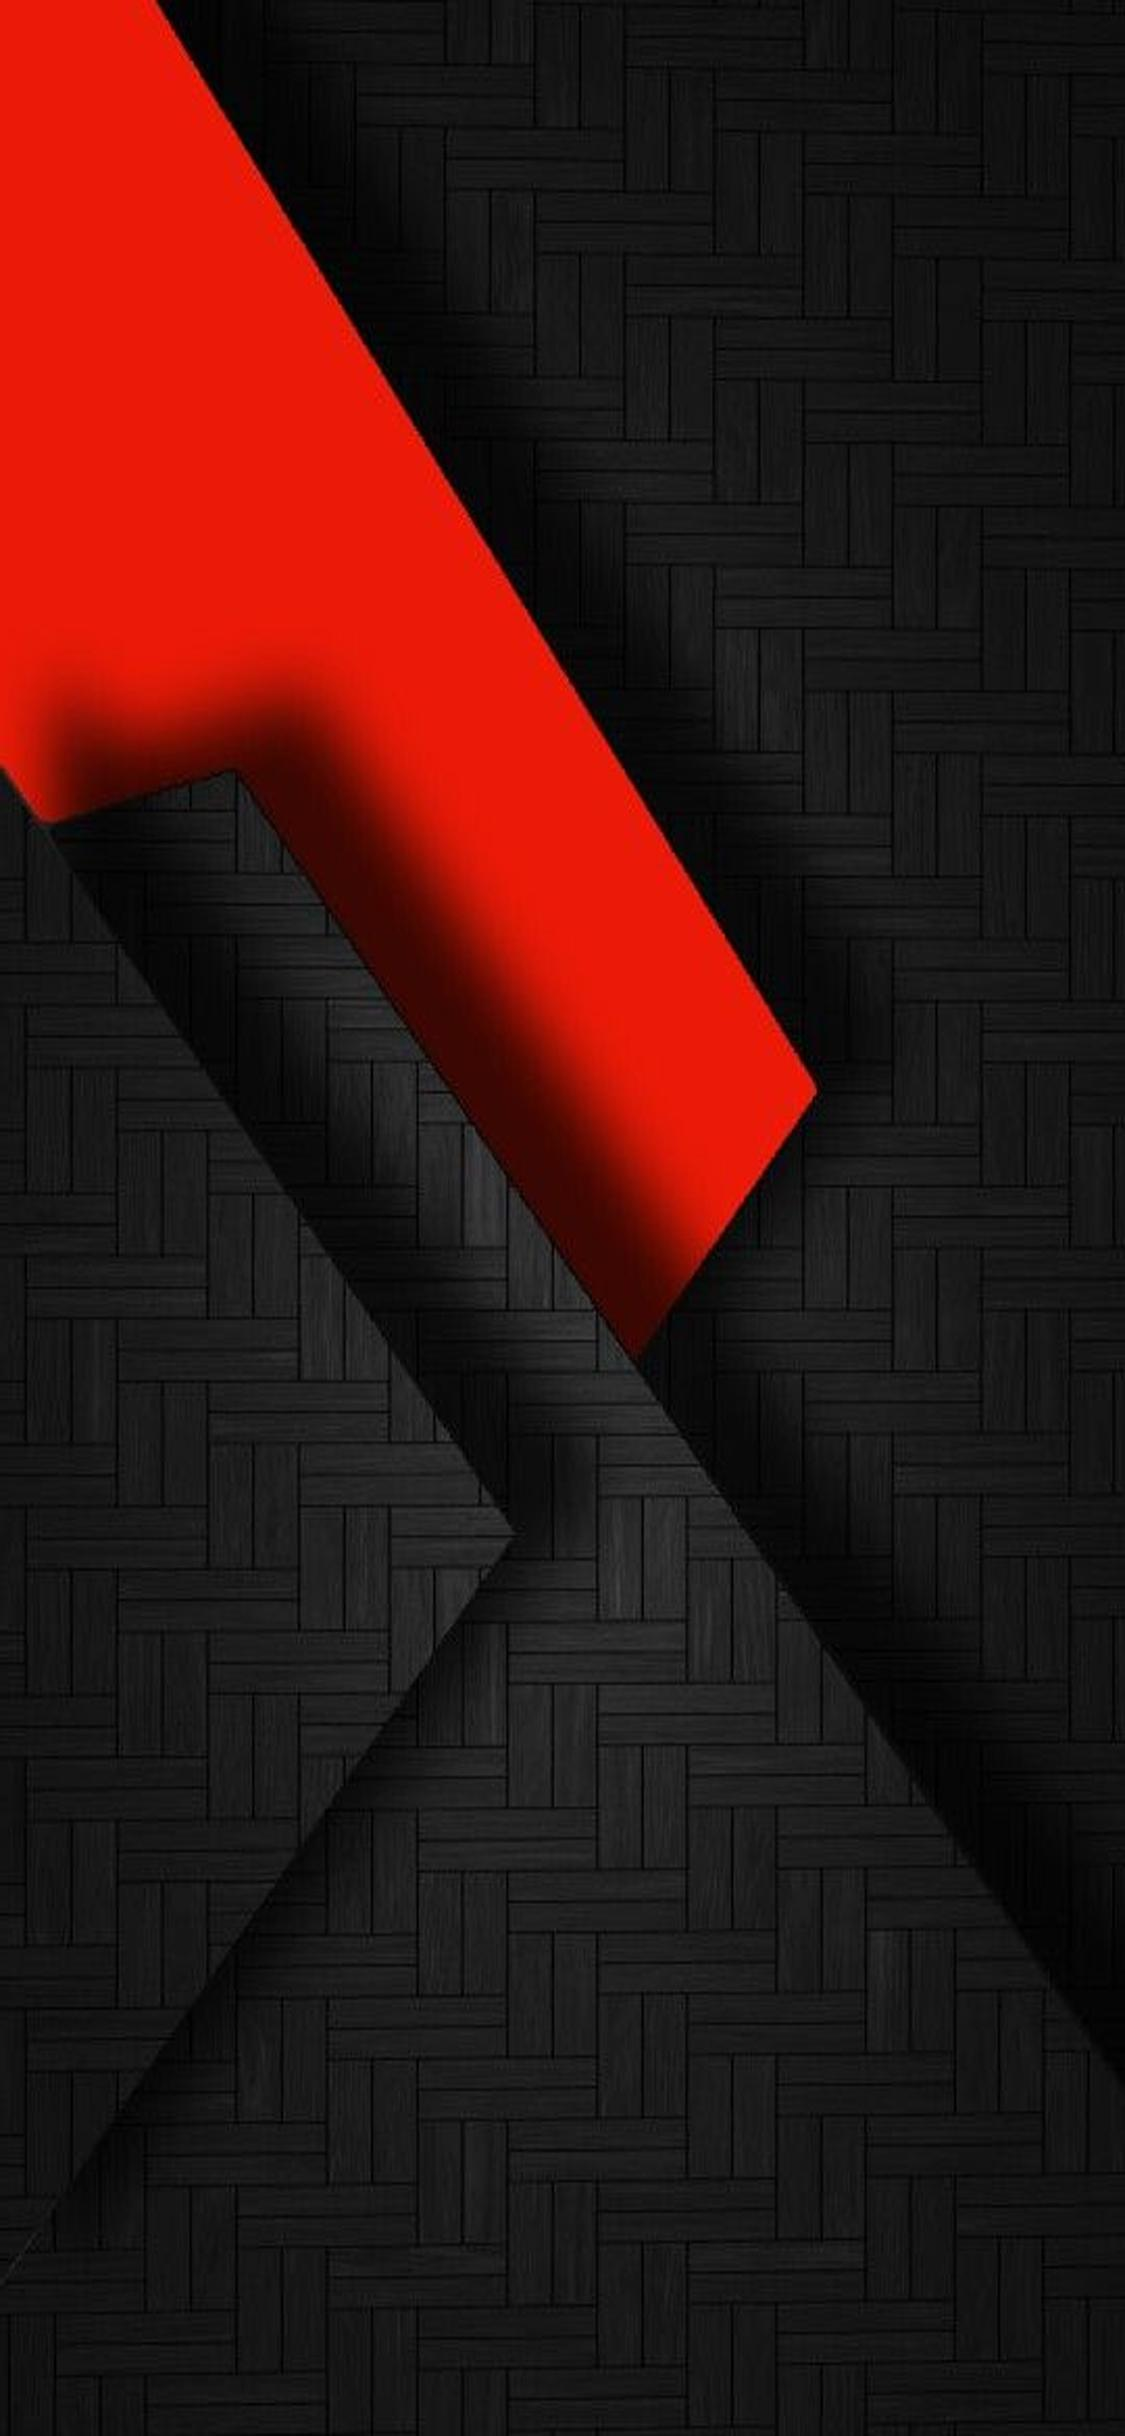 Iphone Xr Wallpaper Red And Black